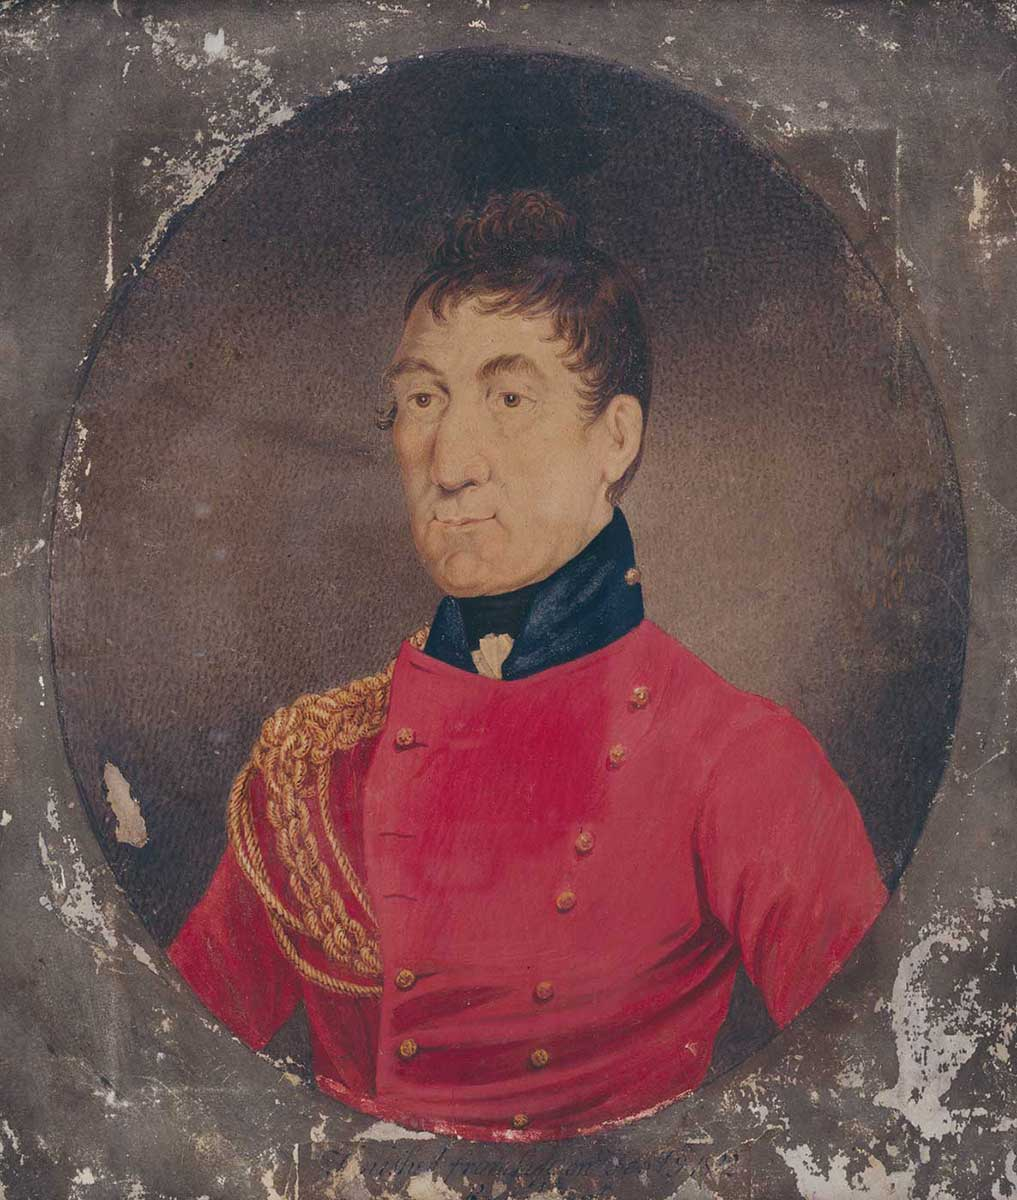 Painting of a man wearing a red uniform. - click to view larger image